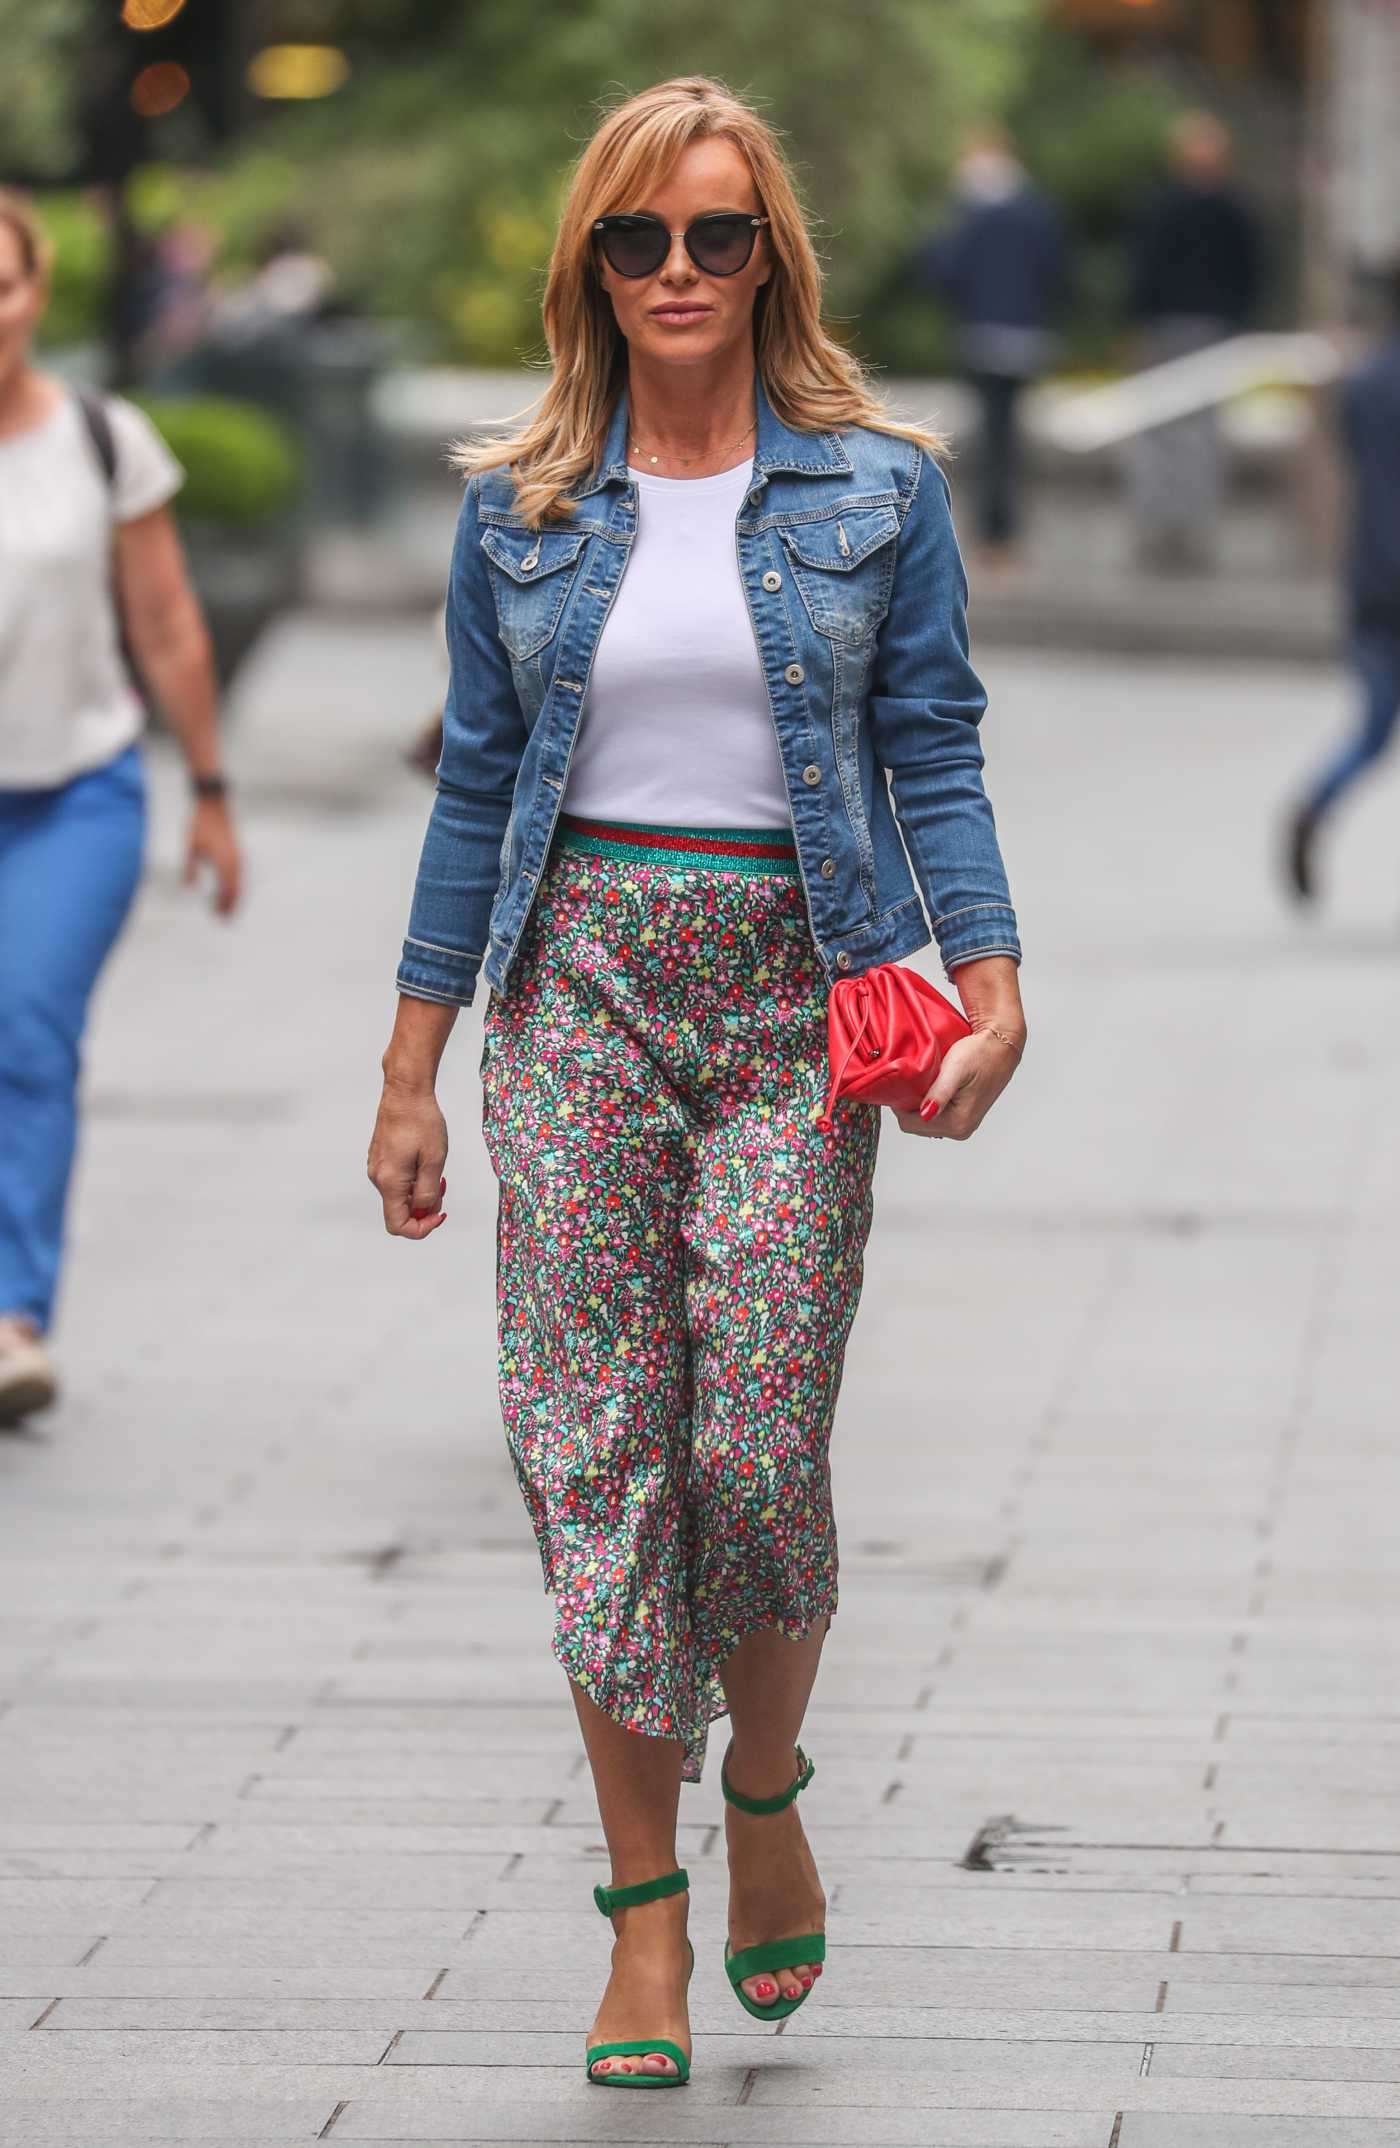 Amanda Holden in a Blue Denim Jacket Leaves the Heart Radio in London 07/08/2020